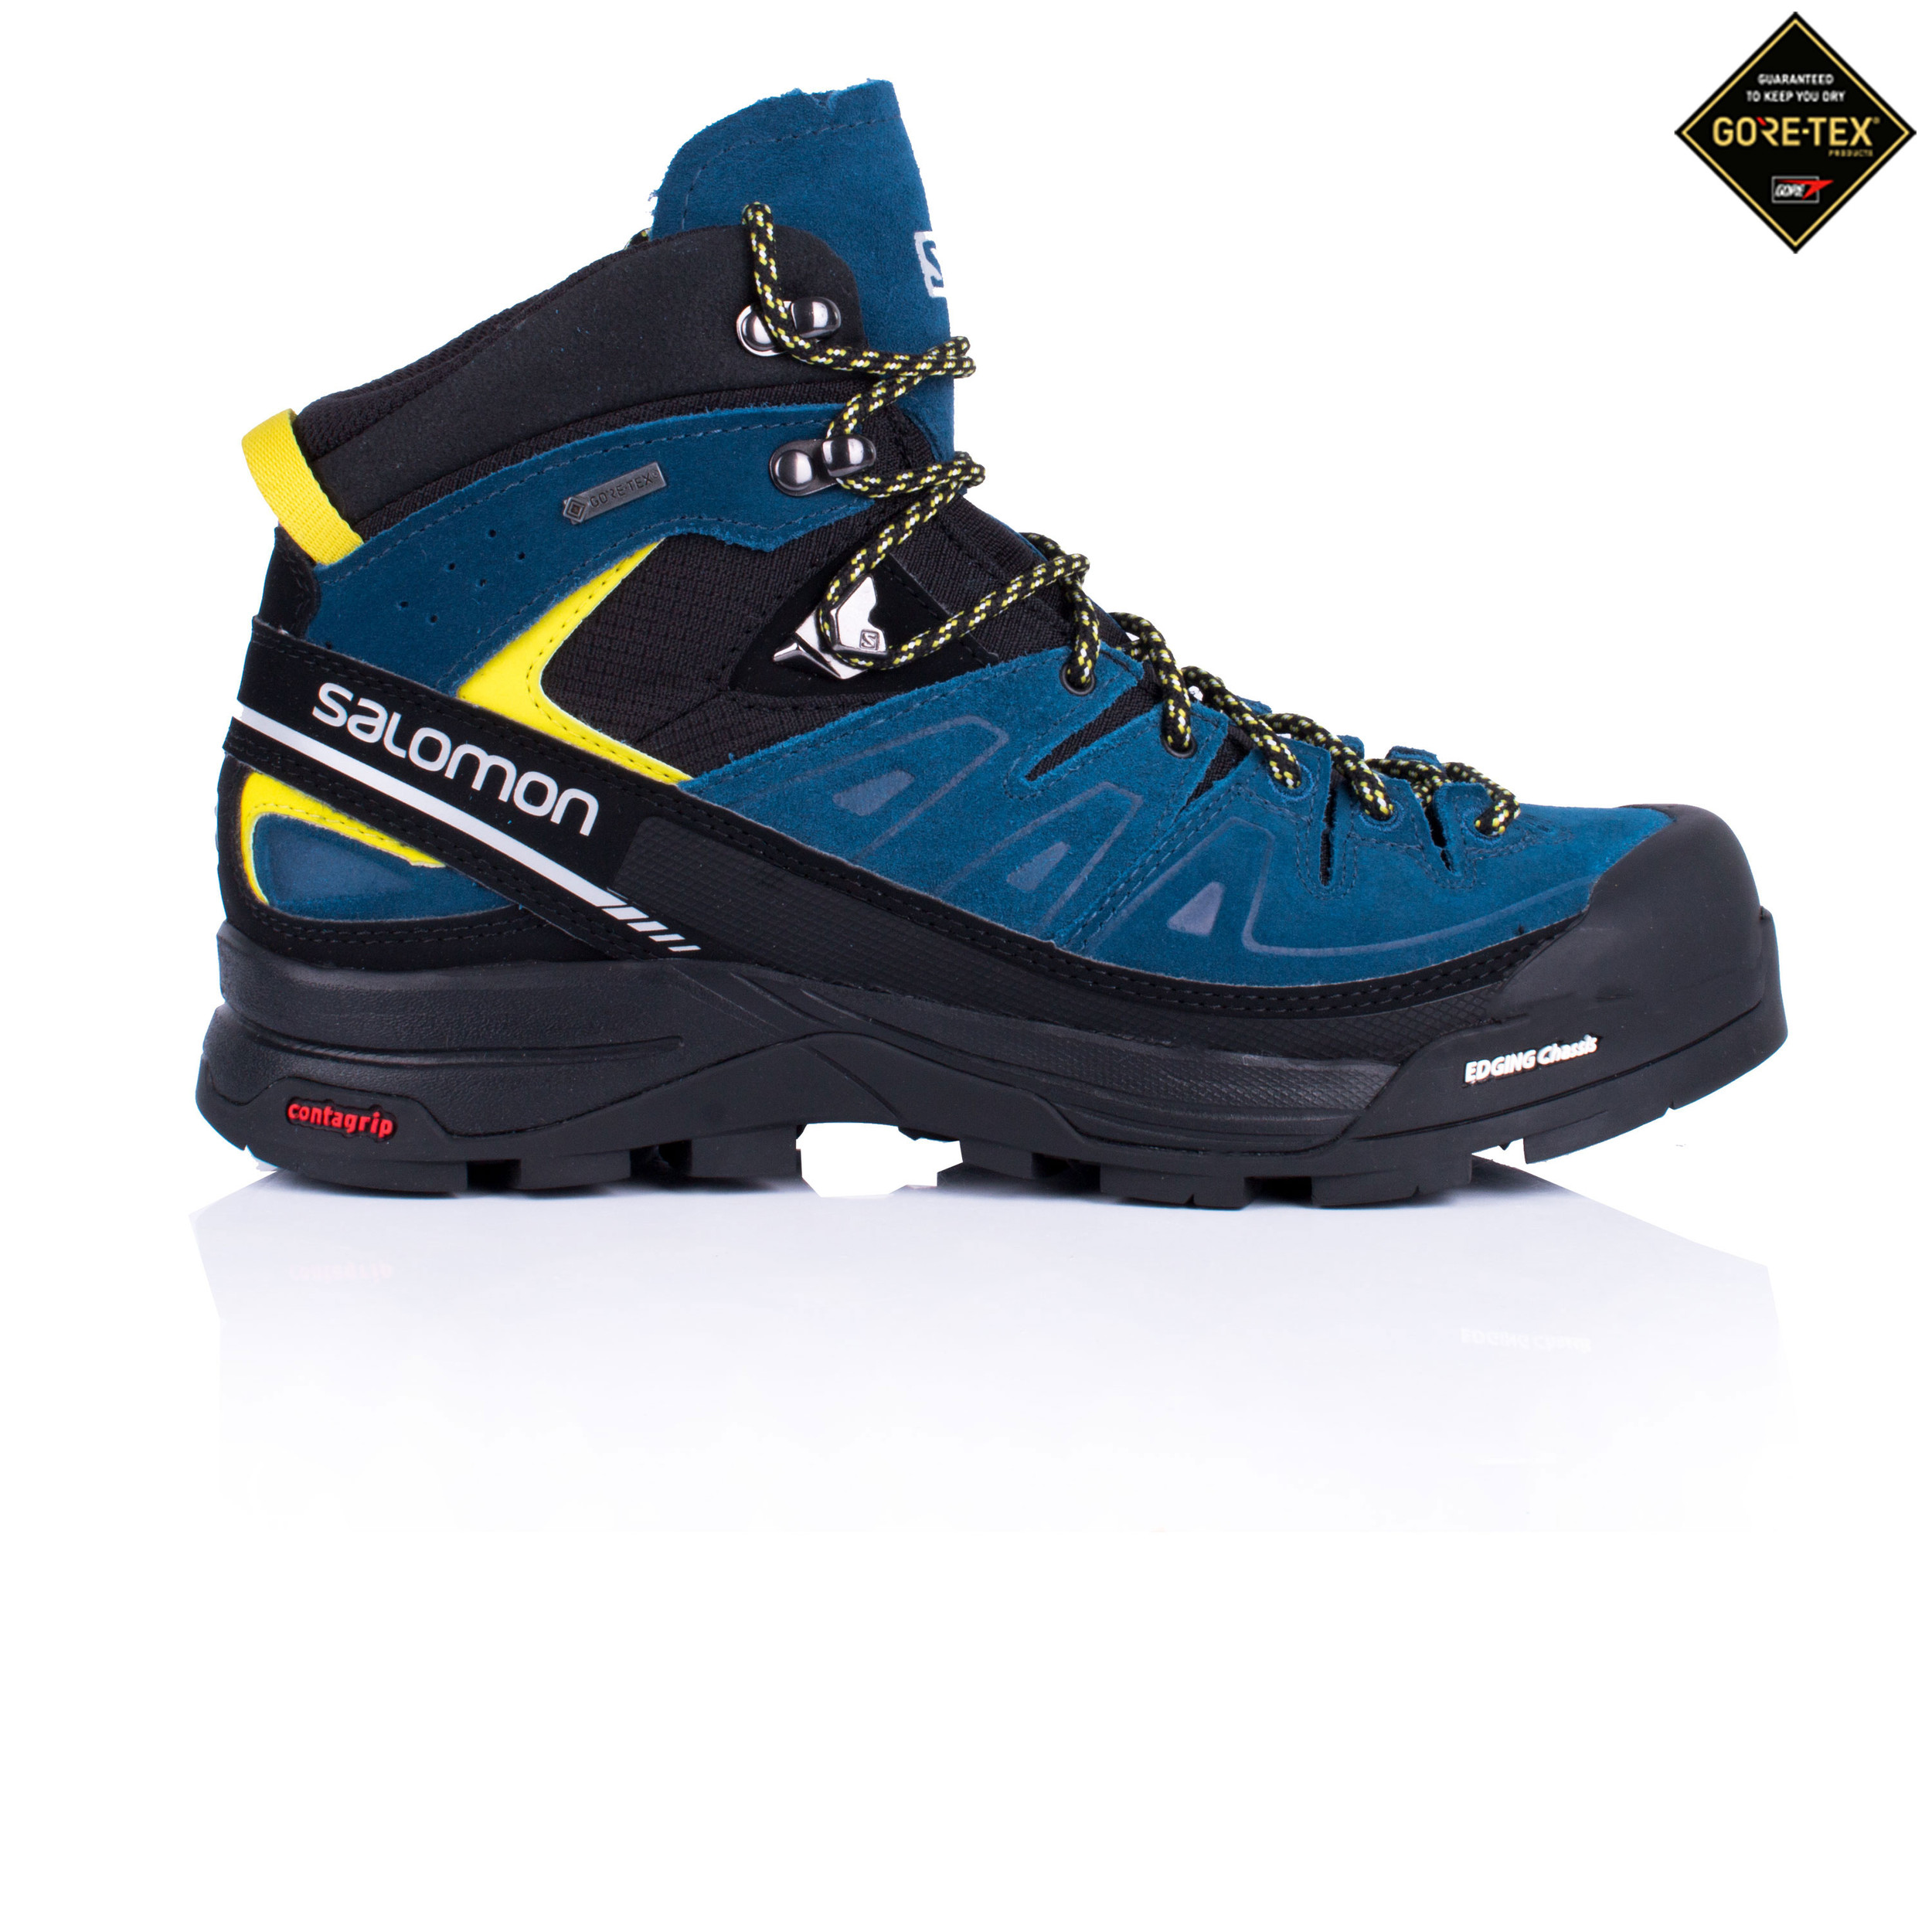 23c7ea21 Details about Salomon Mens X Alp Mid Ltr Gore-Tex Walking Boots Blue Sports  Outdoors Water